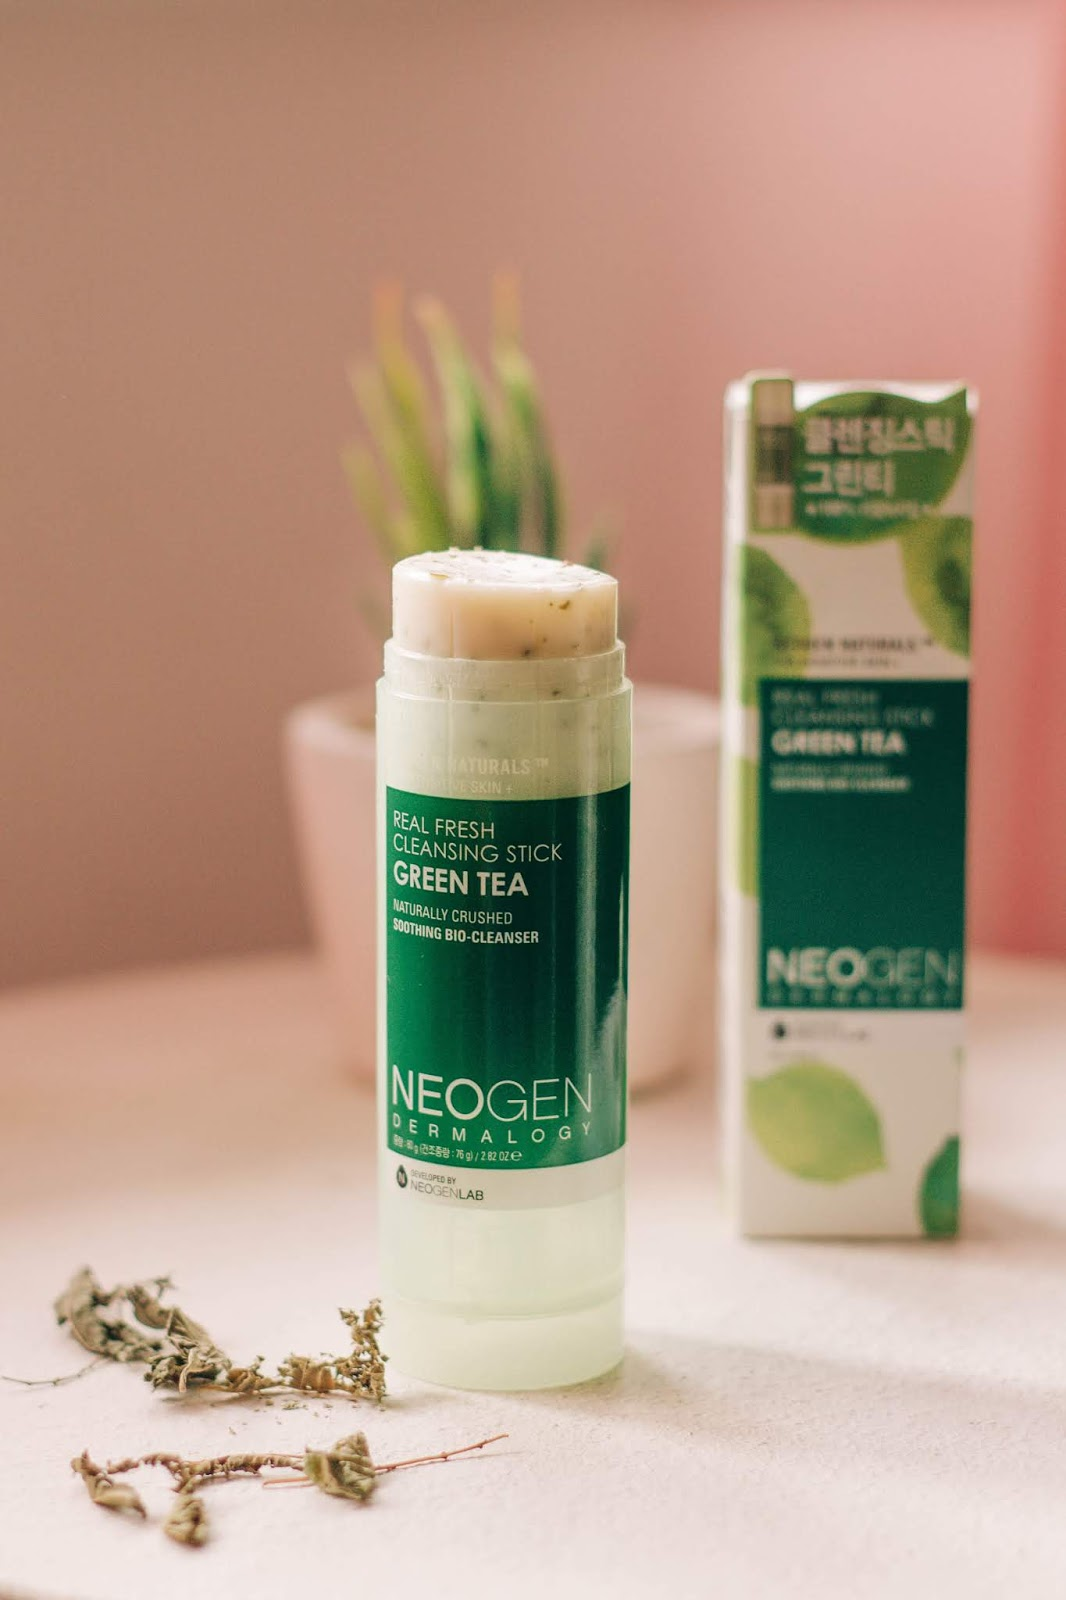 In my daily life I find it important to have practical products, especially when it comes to skincare (although I always value my time when it comes to clean, treat, and moisturize the skin). It is precisely what I feel with this cleansing stick from Neogen — it is a practical and easy to use product to cleanse the face.